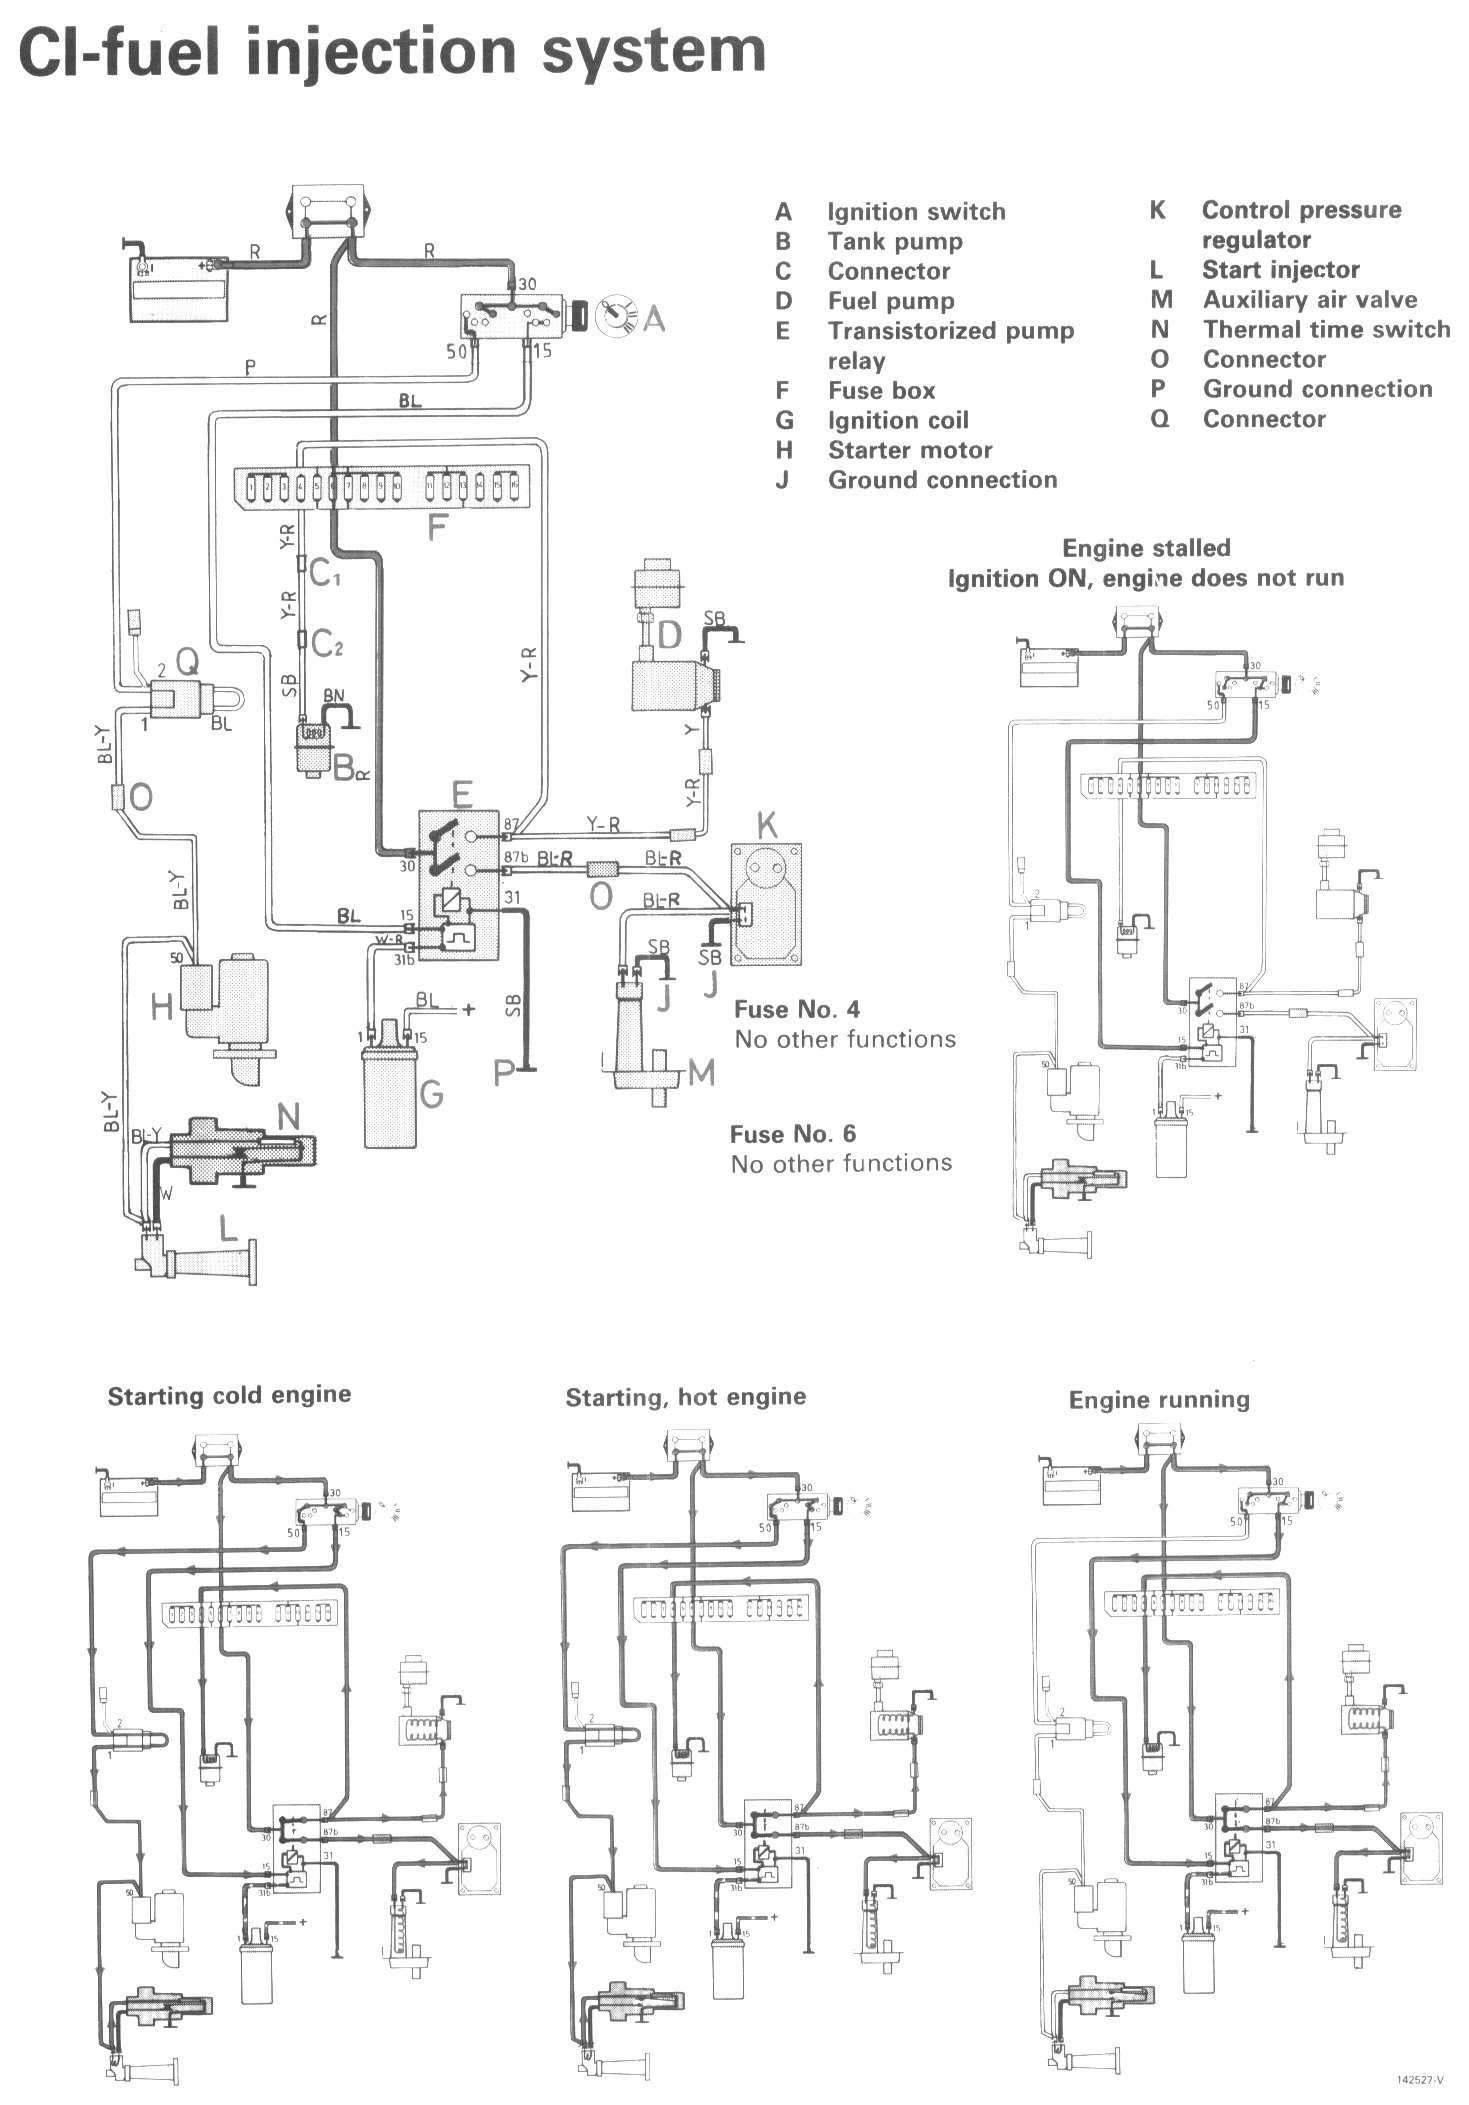 220d volvo fuel pump wiring diagram i have a 1990 volvo 240 gl,2.3litre fuel injected which ...